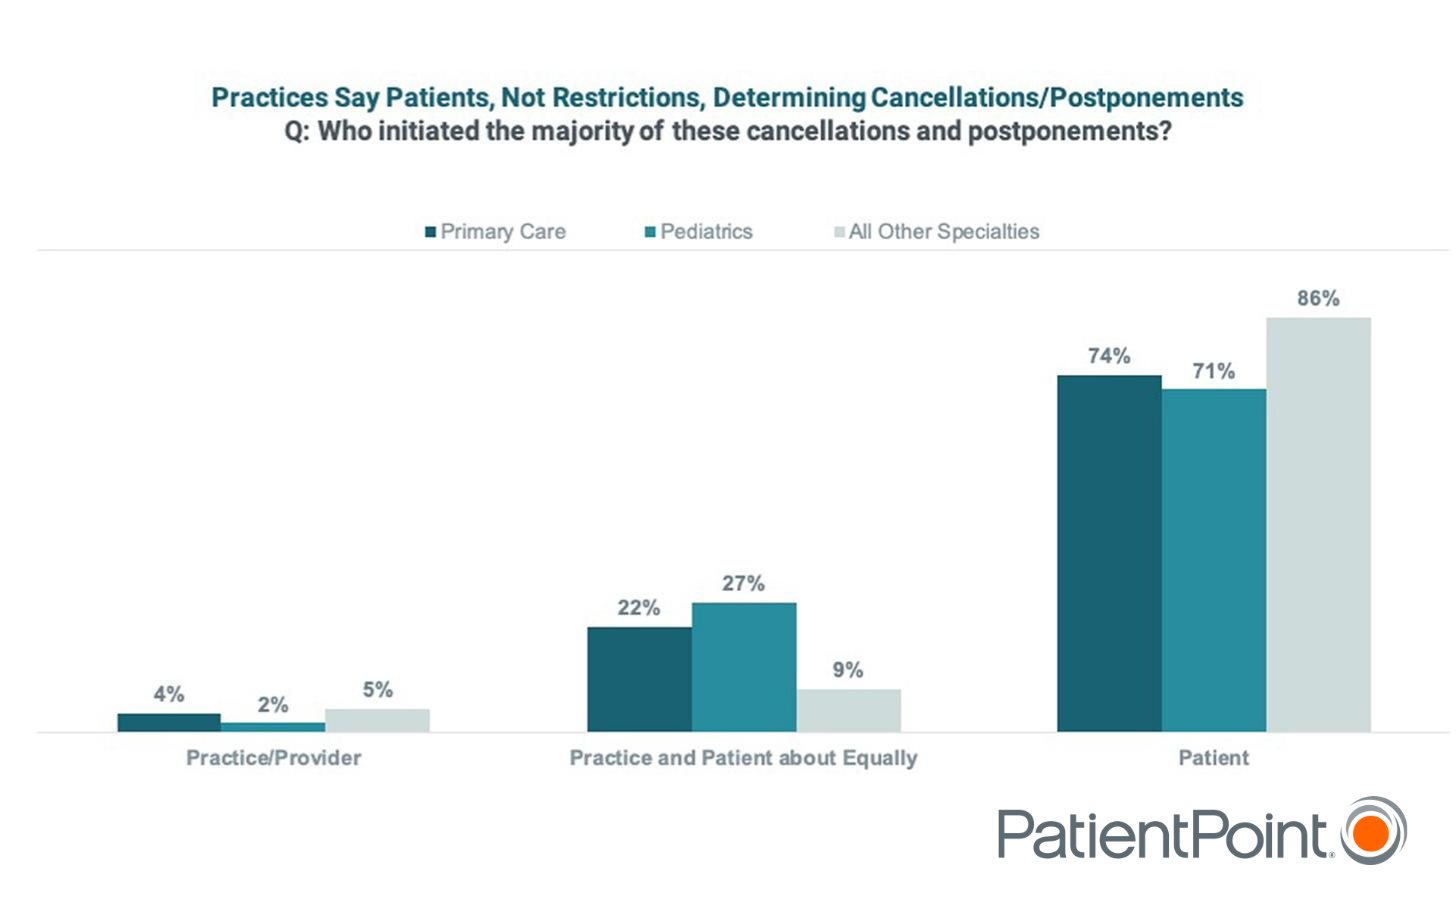 A graph depicting healthcare provider responses to a survey question showing that patients are largely in control of whether appointments are cancelled or postponed.